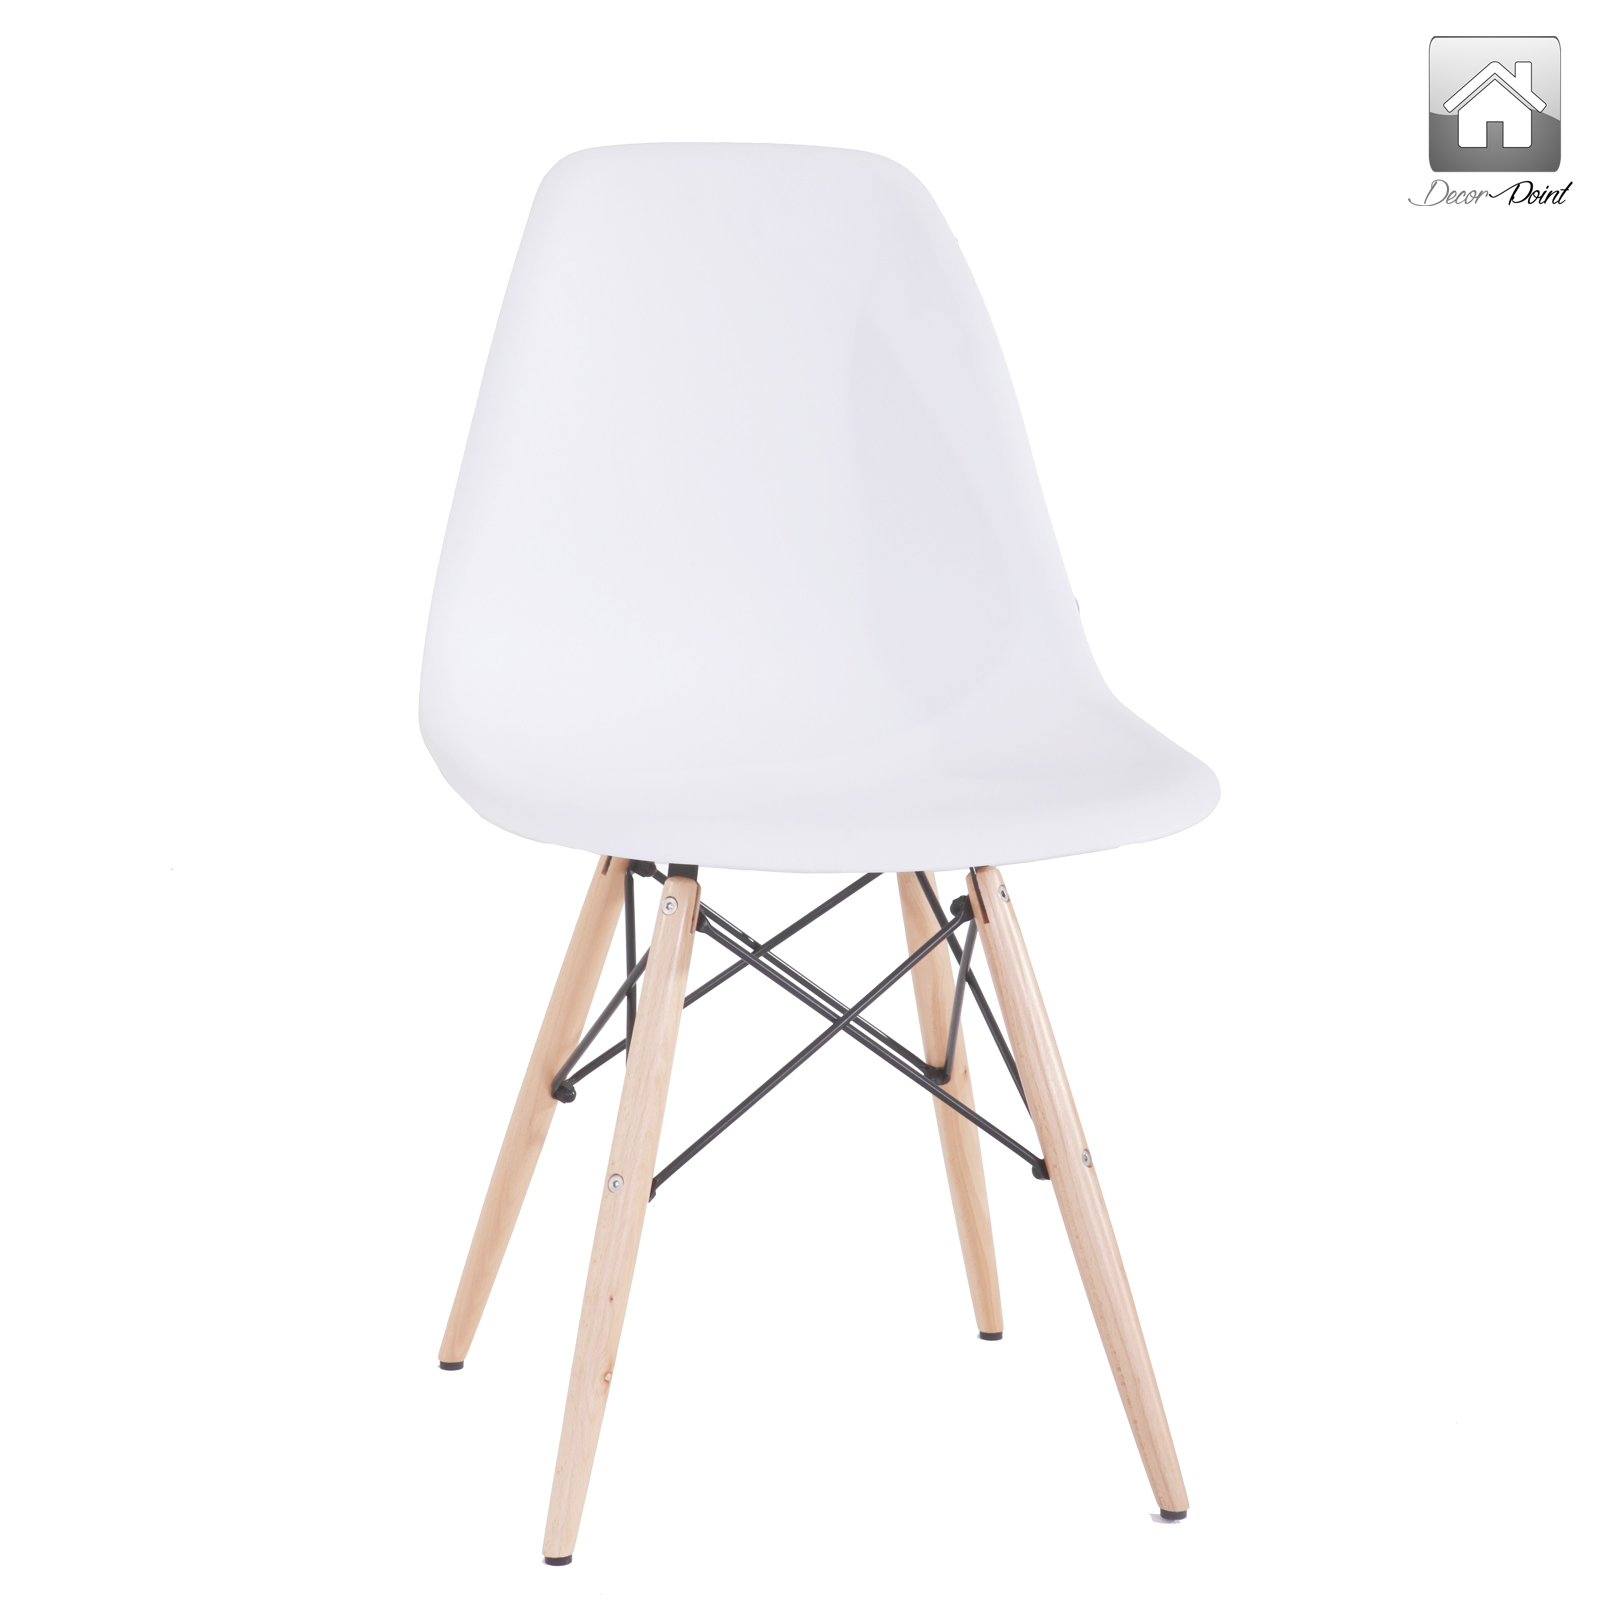 8 x Retro Replica Eames Chick DSW Dining Chairs Office  : Eames Chick White 07 from www.ebay.com.au size 1600 x 1600 jpeg 255kB